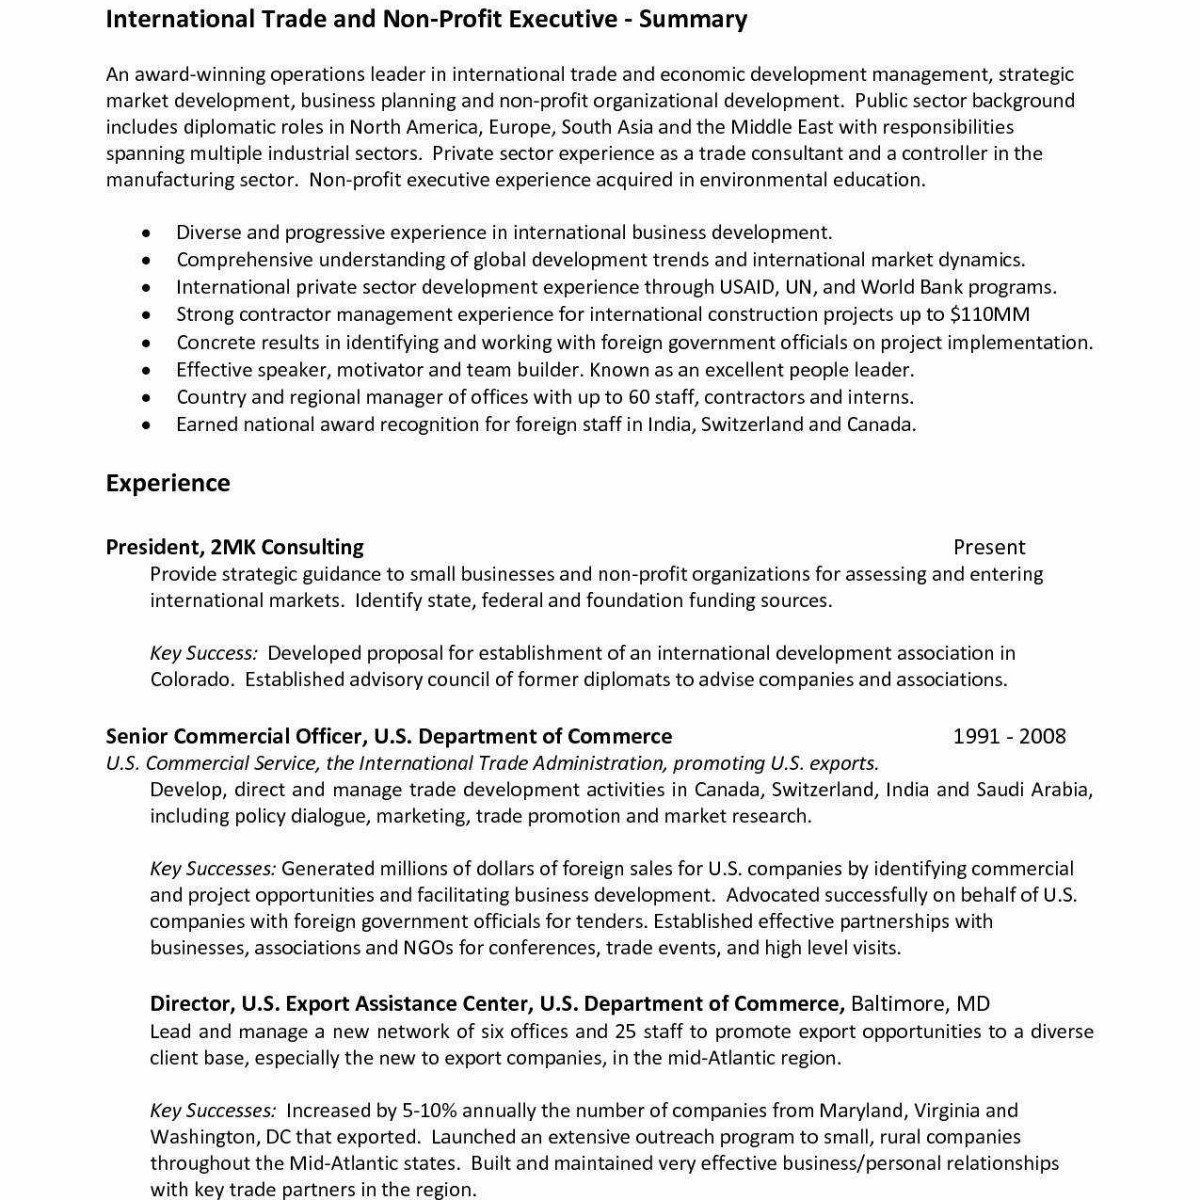 Proposal Resume Template - Resume Template for Students Fresh Propsal Template Unique American